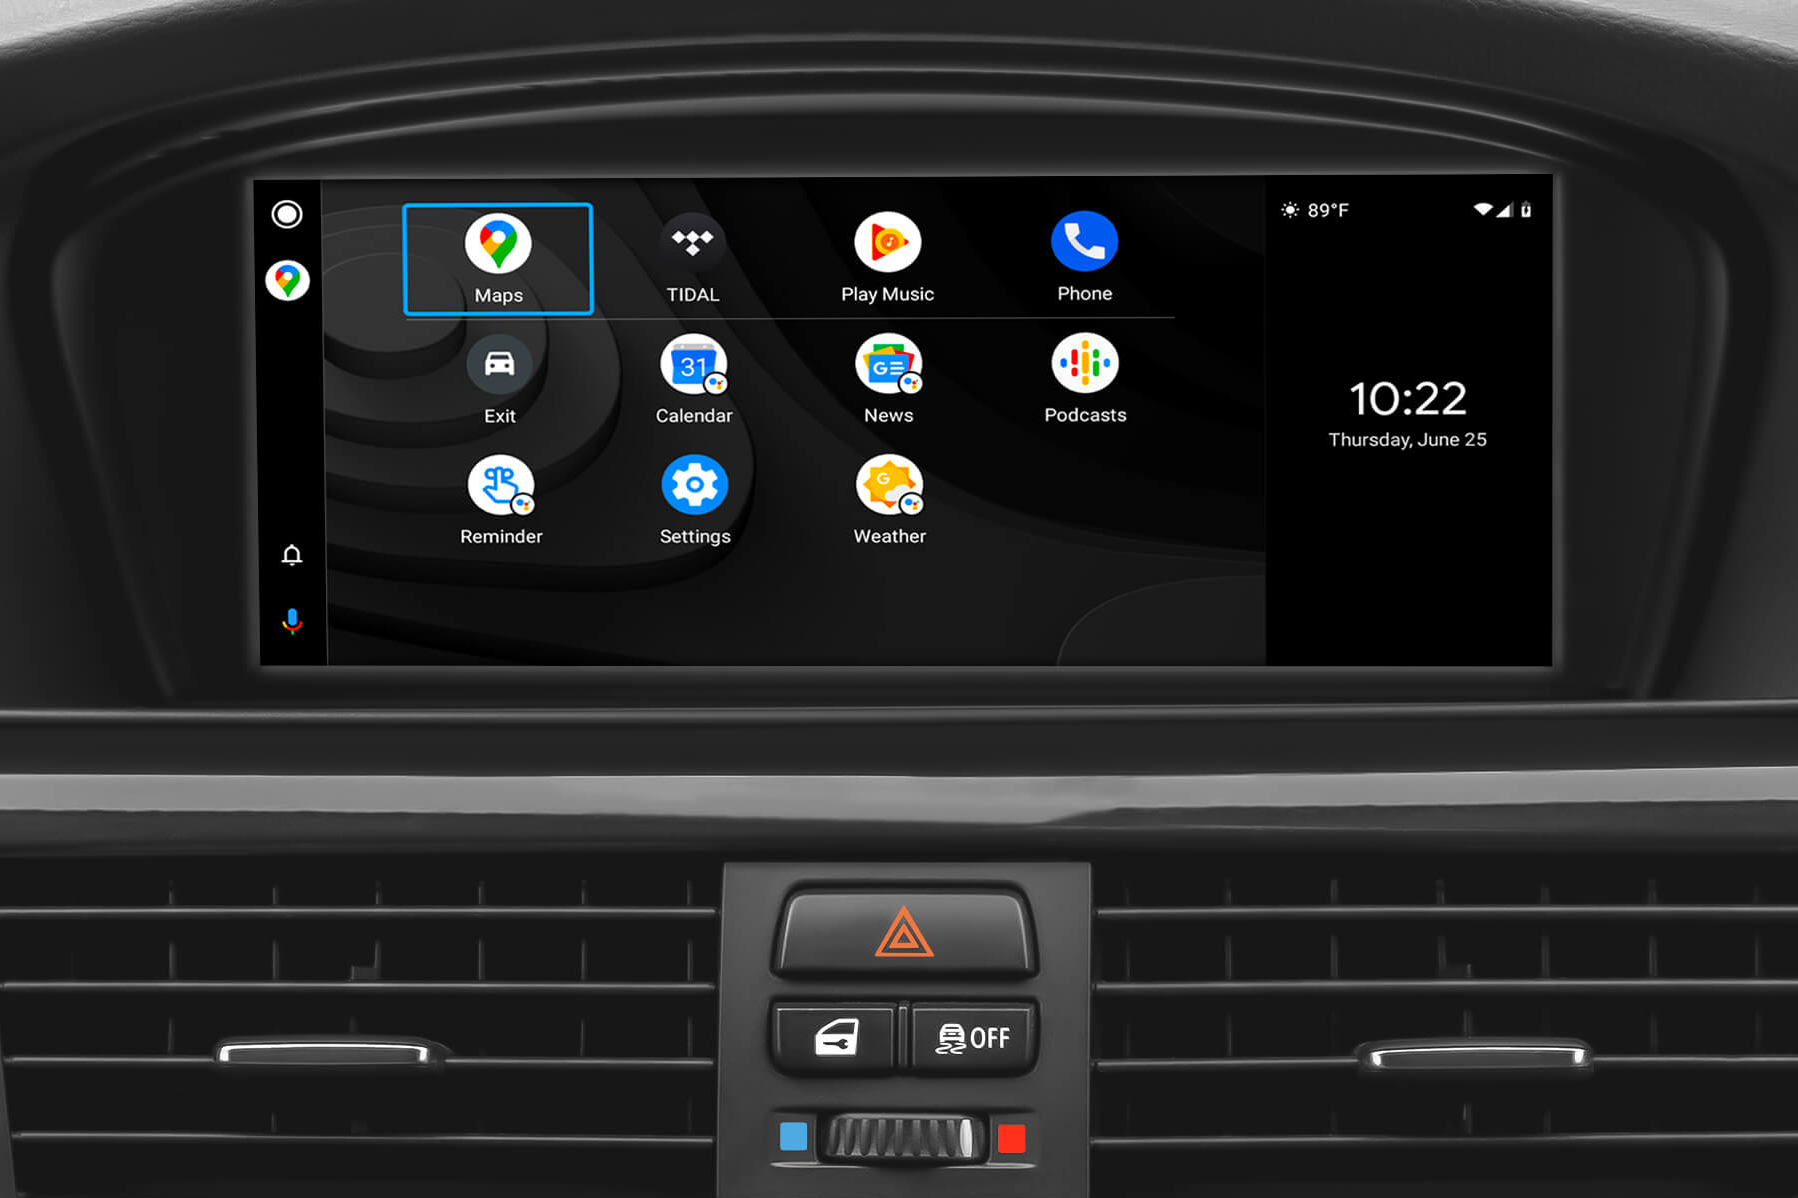 Wireless Android Auto support